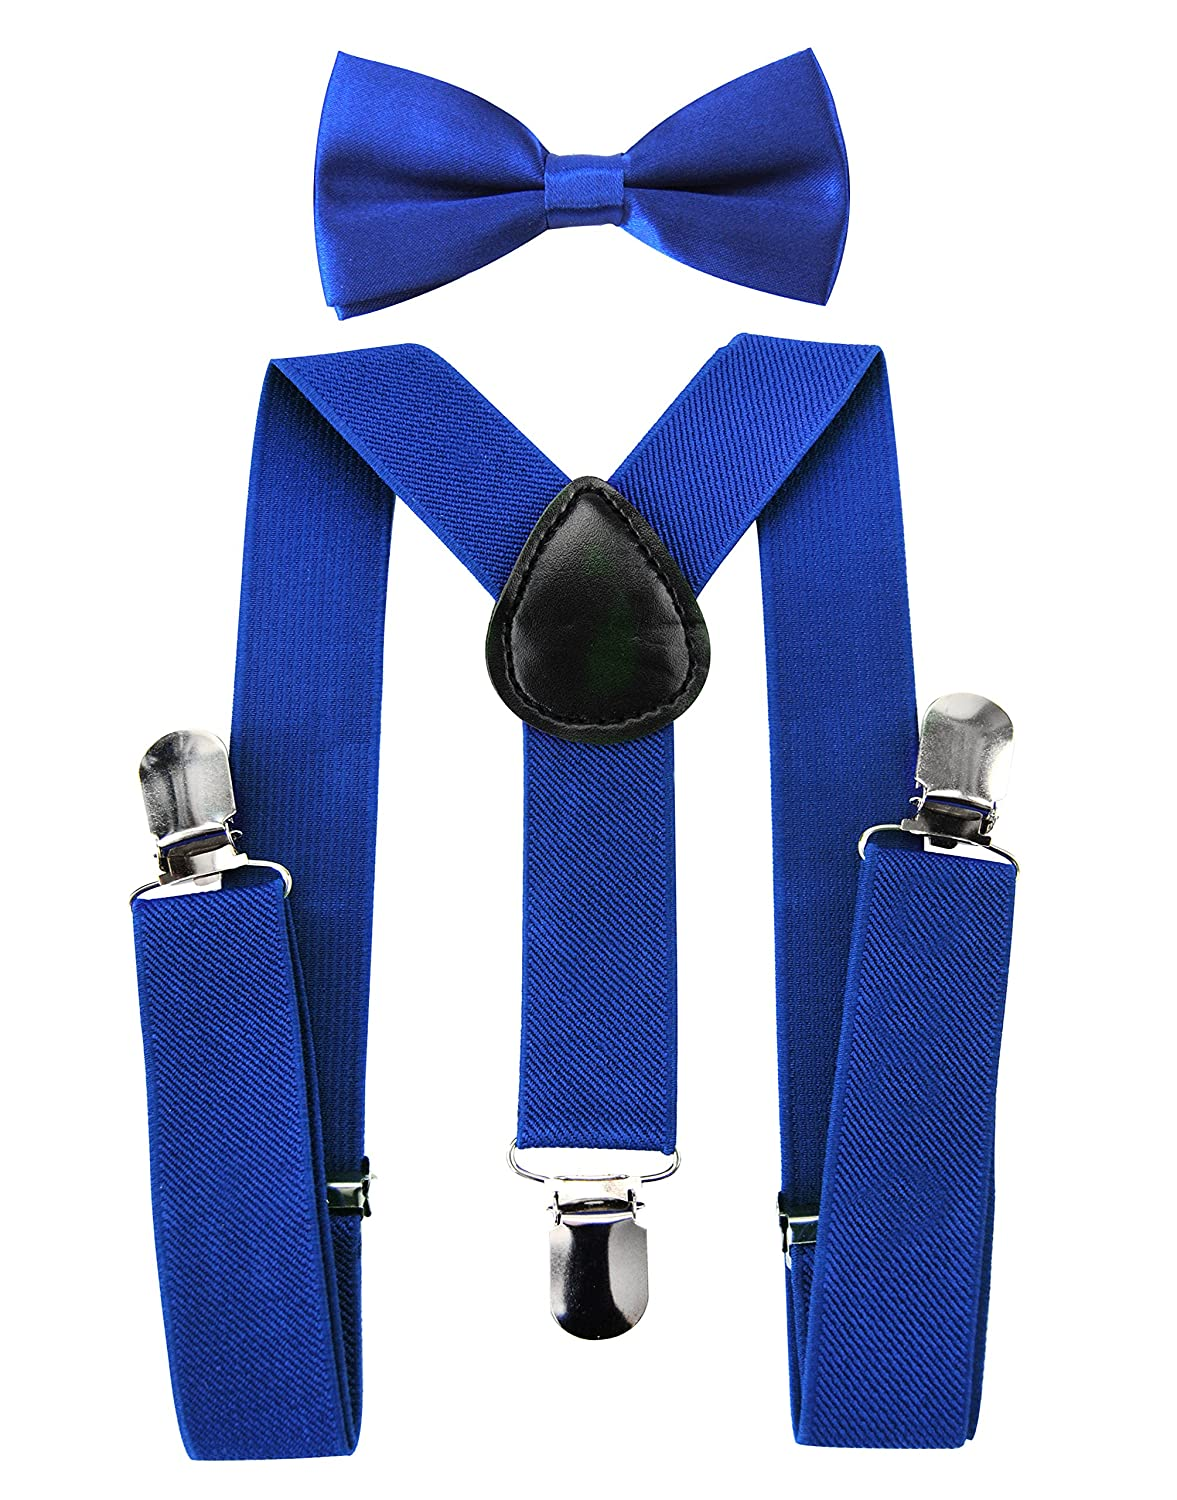 Plain Colours Axy High Quality Children/'s Y-shape Braces with Bow Tie 3 Extra Strong Clips